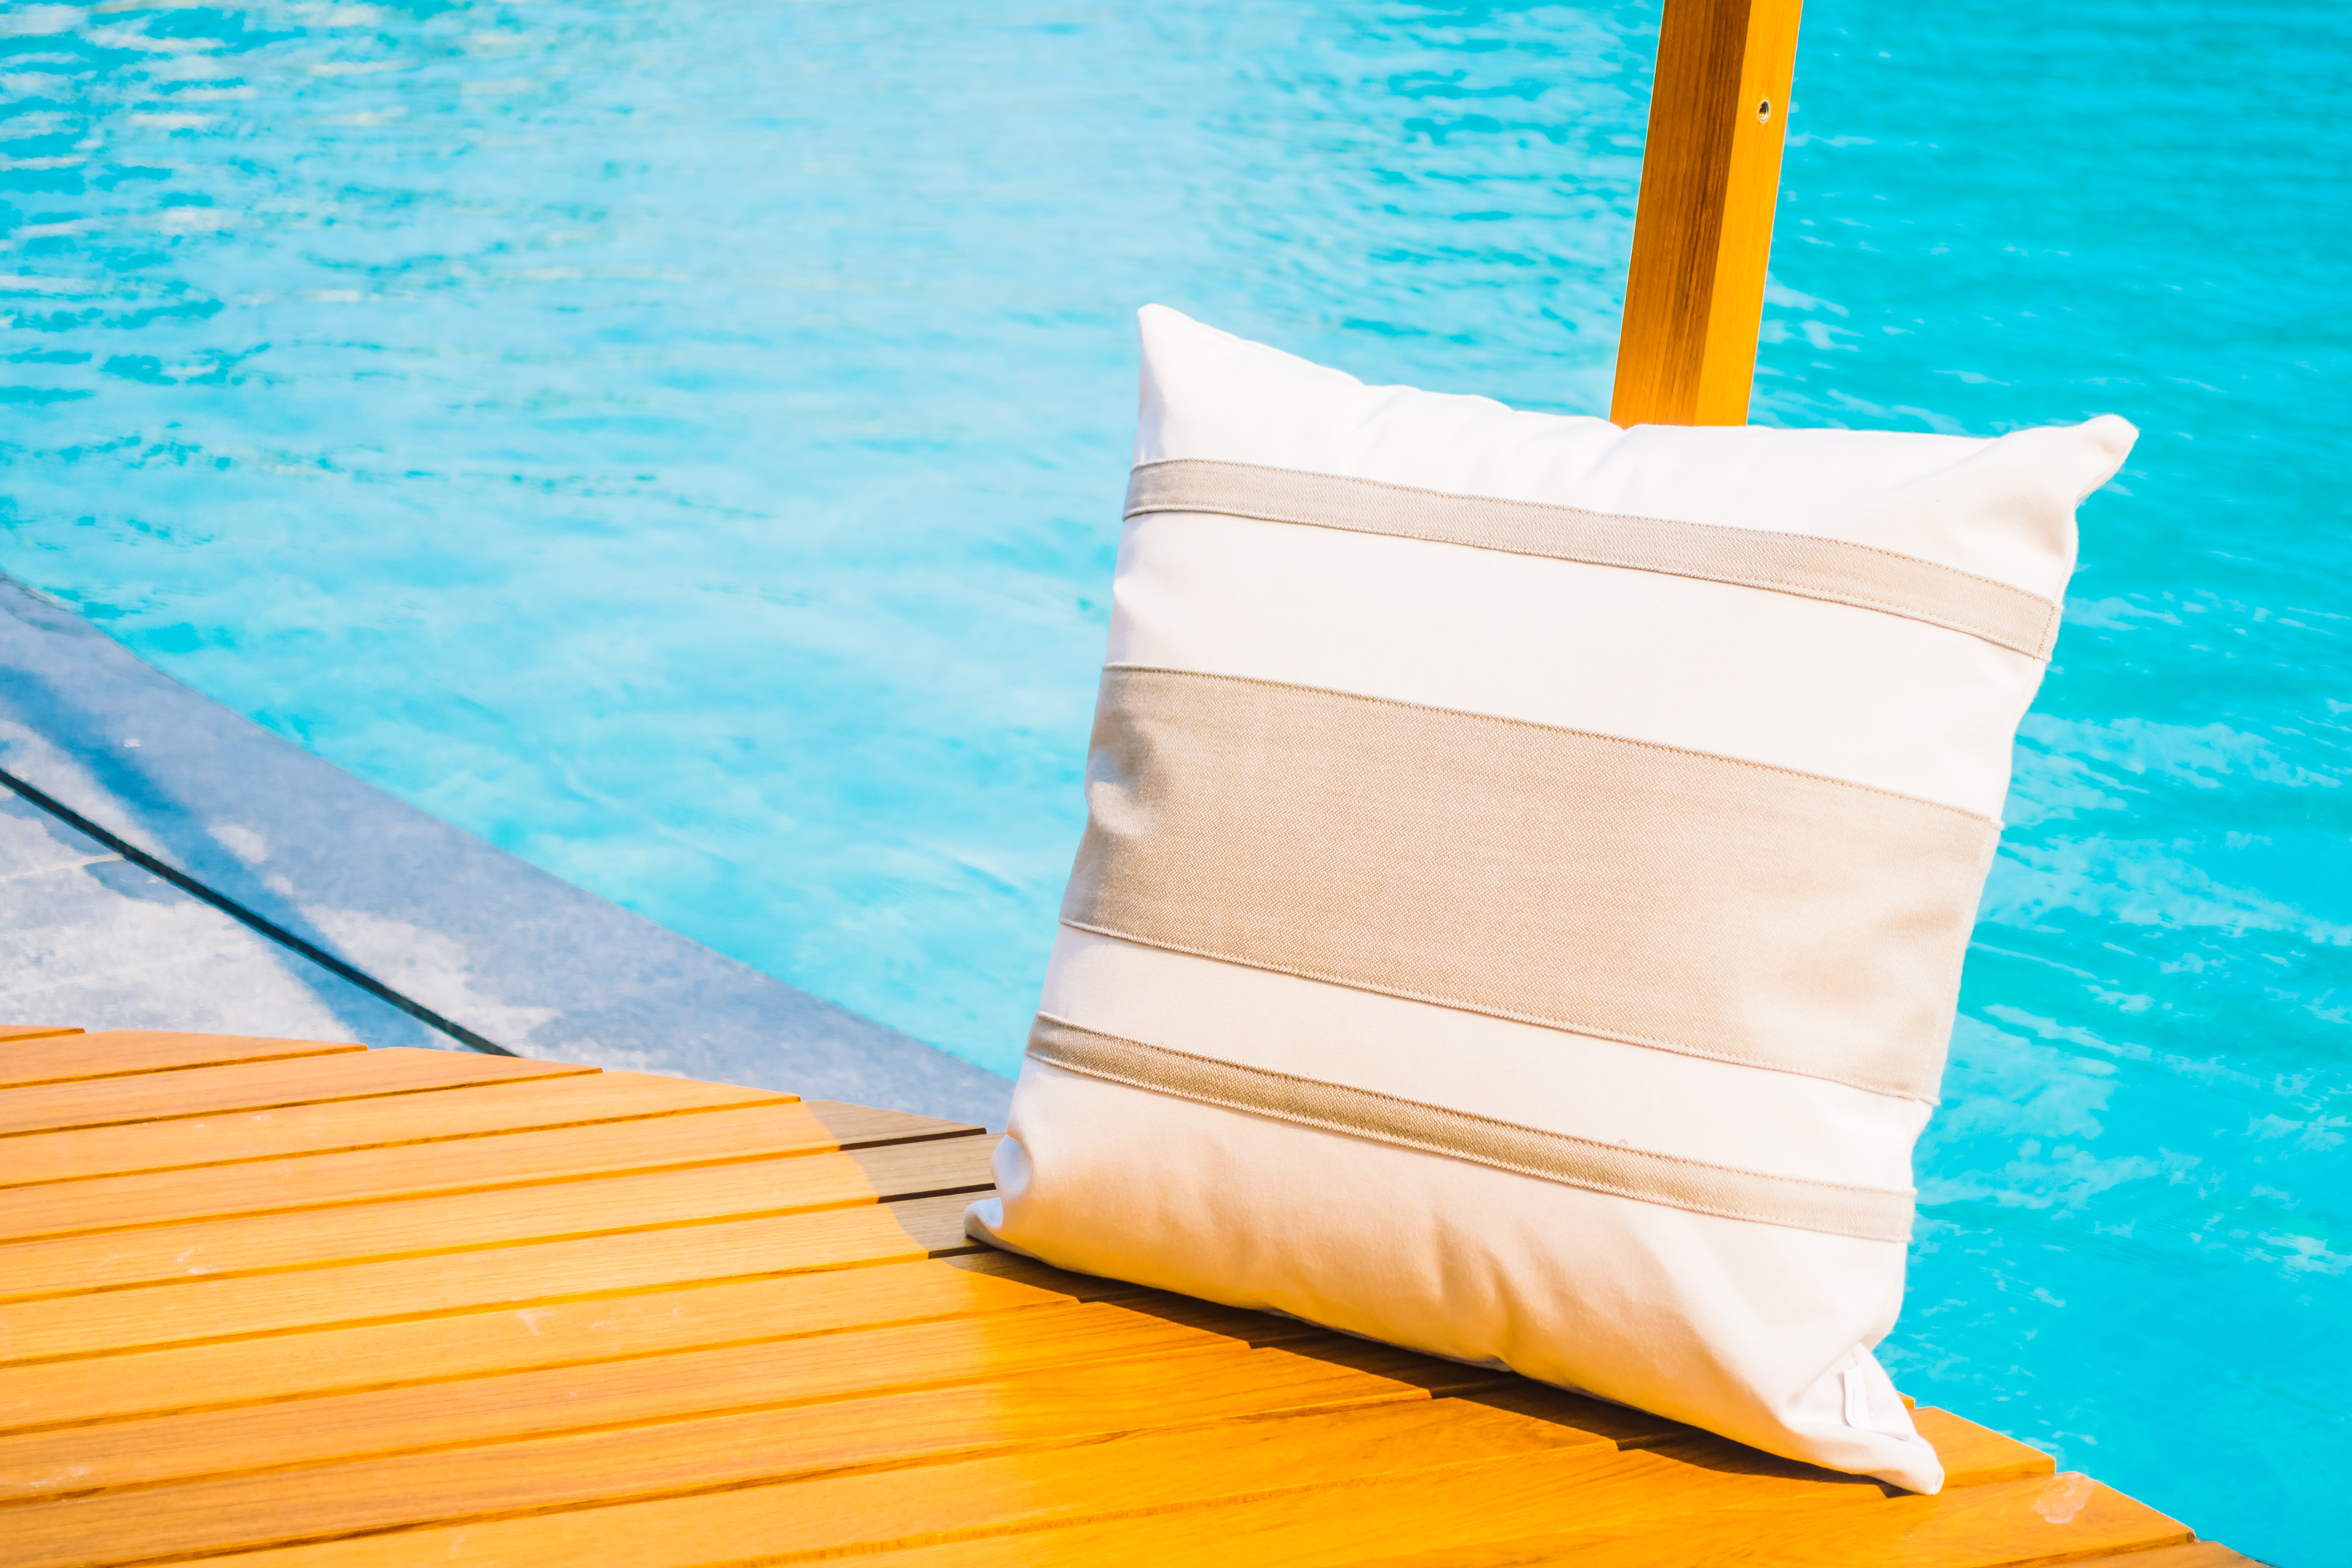 Selective focus point at pillow on deck around swimming pool in hotel resort - Vintage Light Filter